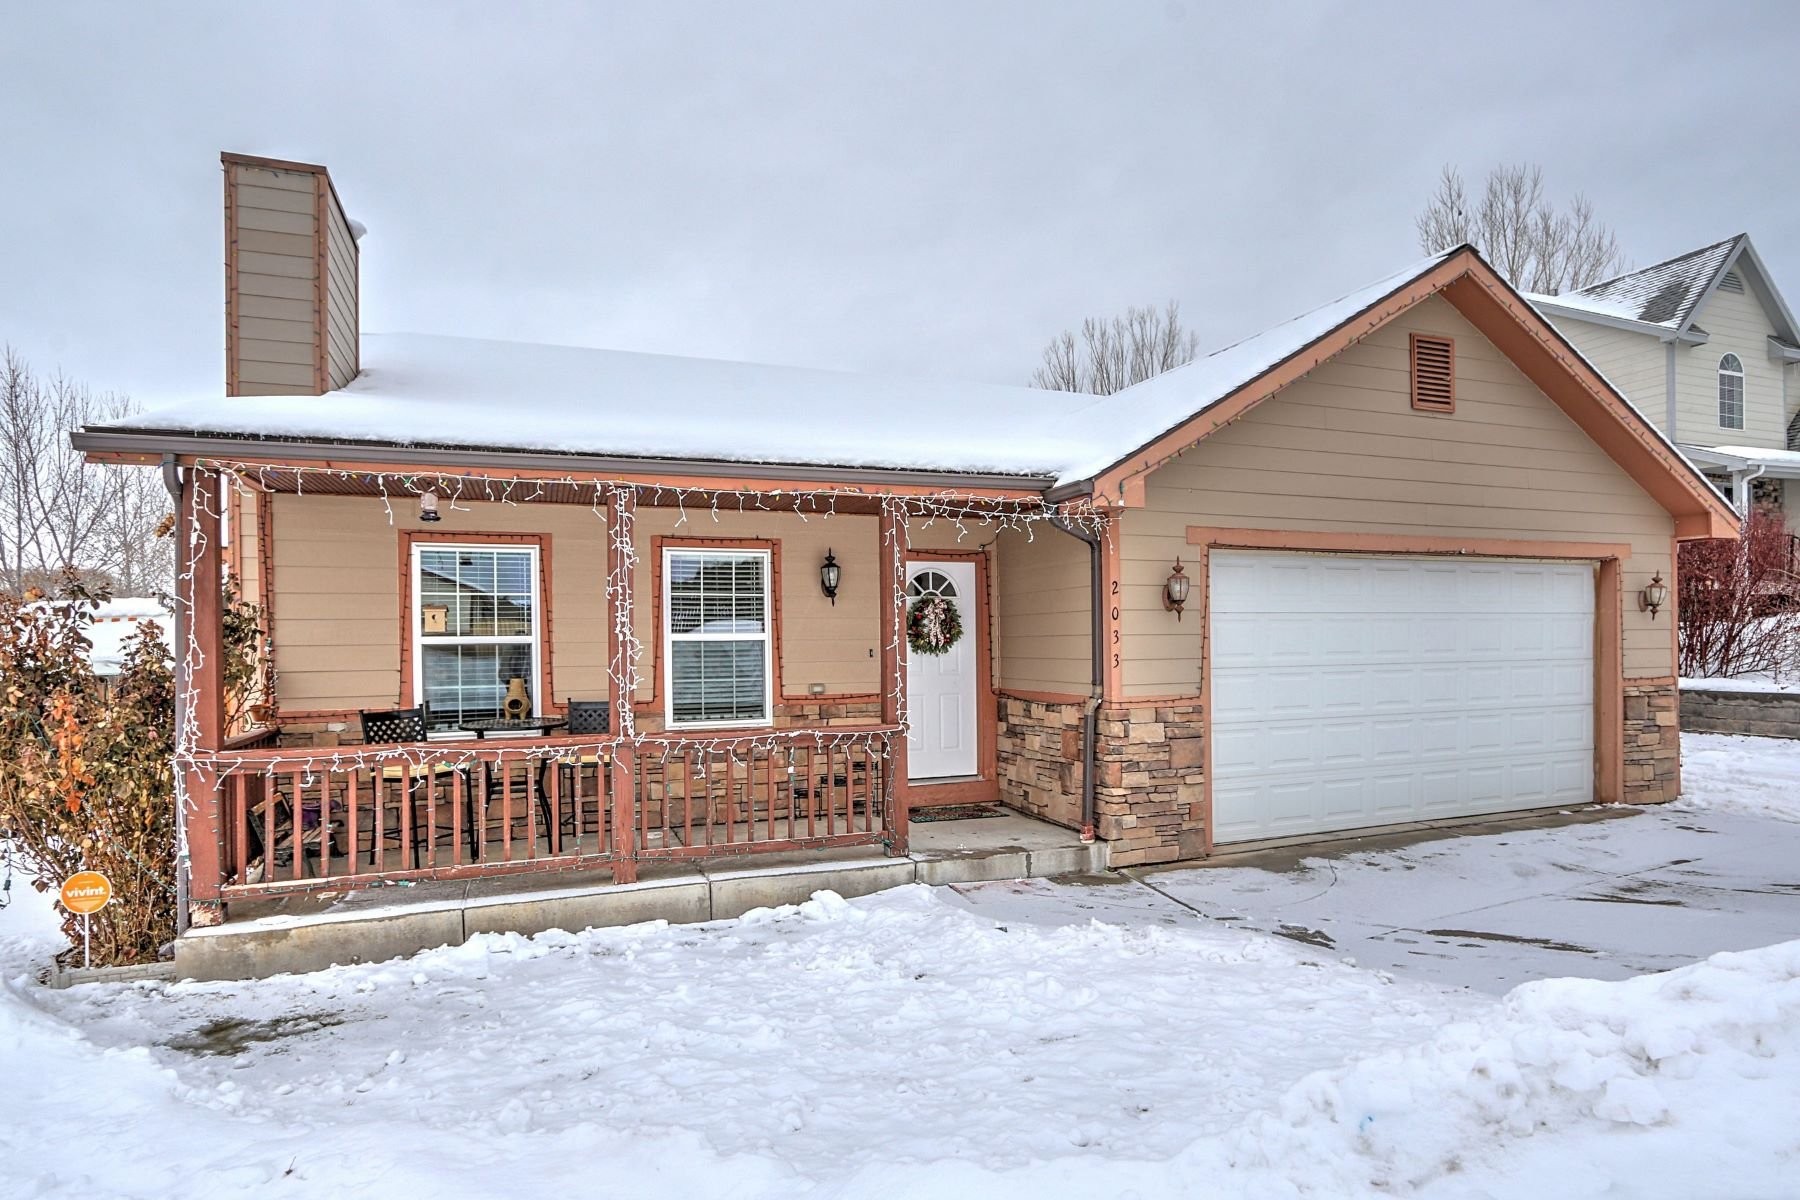 Single Family Home for Active at RANCH STYLE DREAM 2033 Morning Star Drive Silt, Colorado 81652 United States